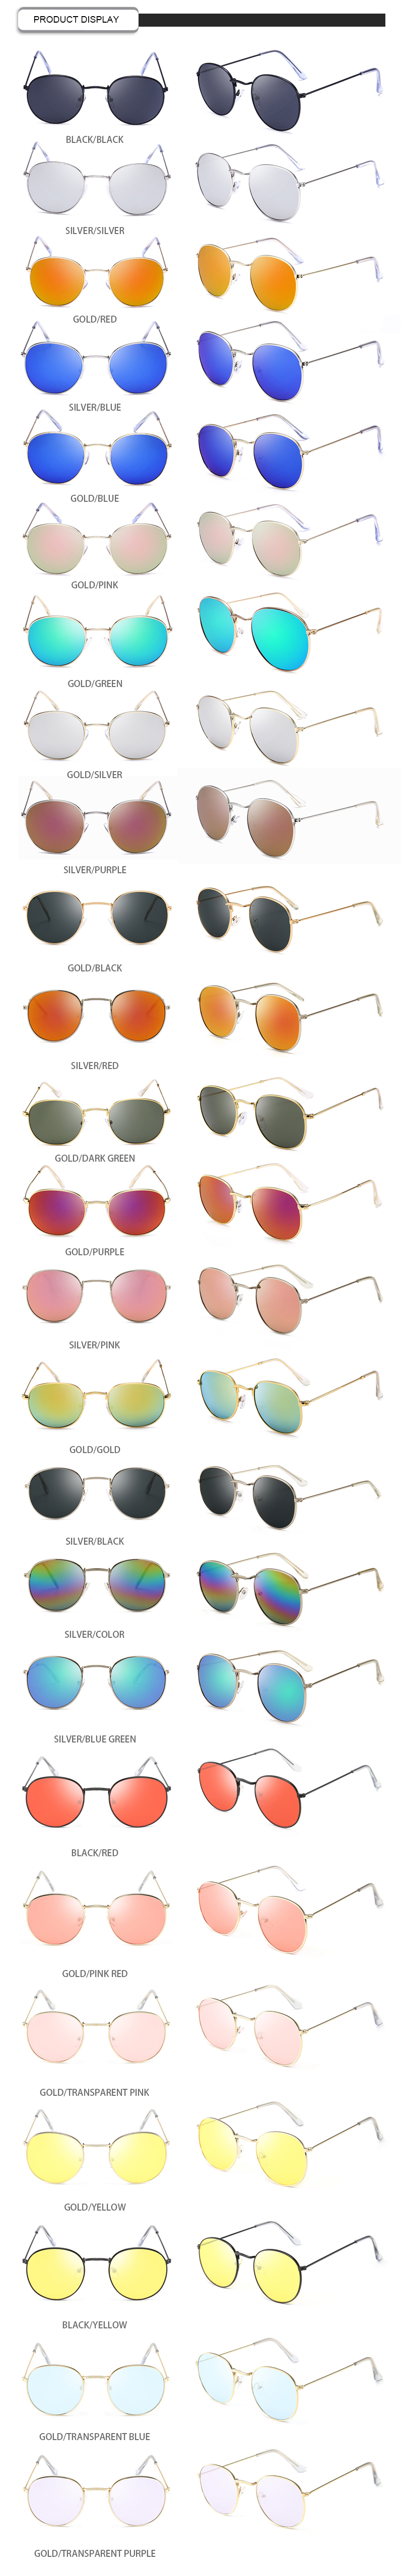 Fuqian girls sunglasses collection for business for women-11